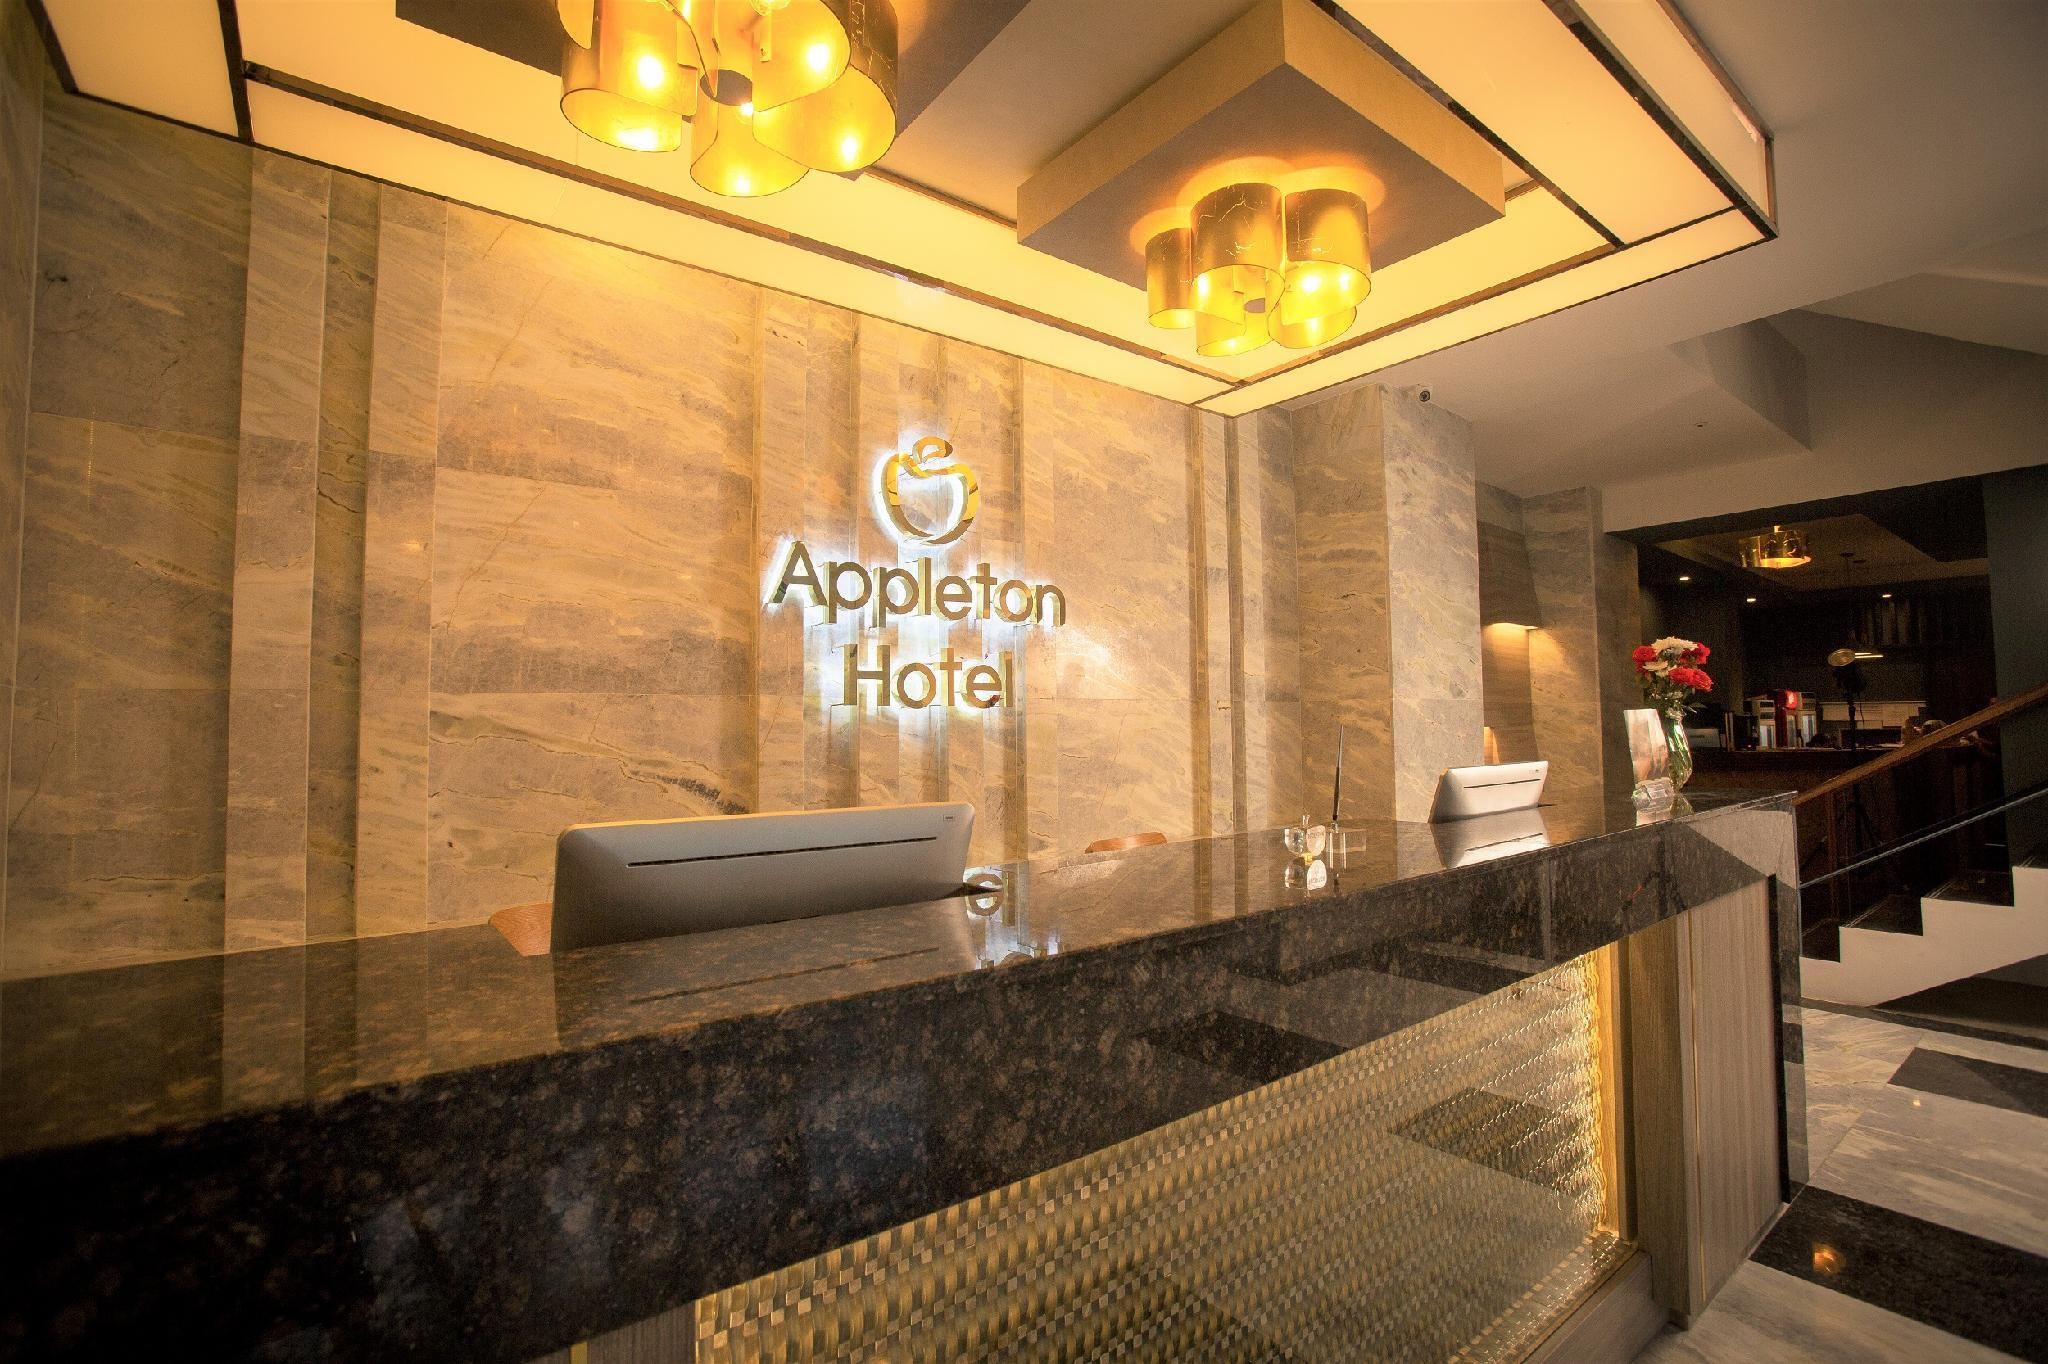 First date ideas appleton wi hotels